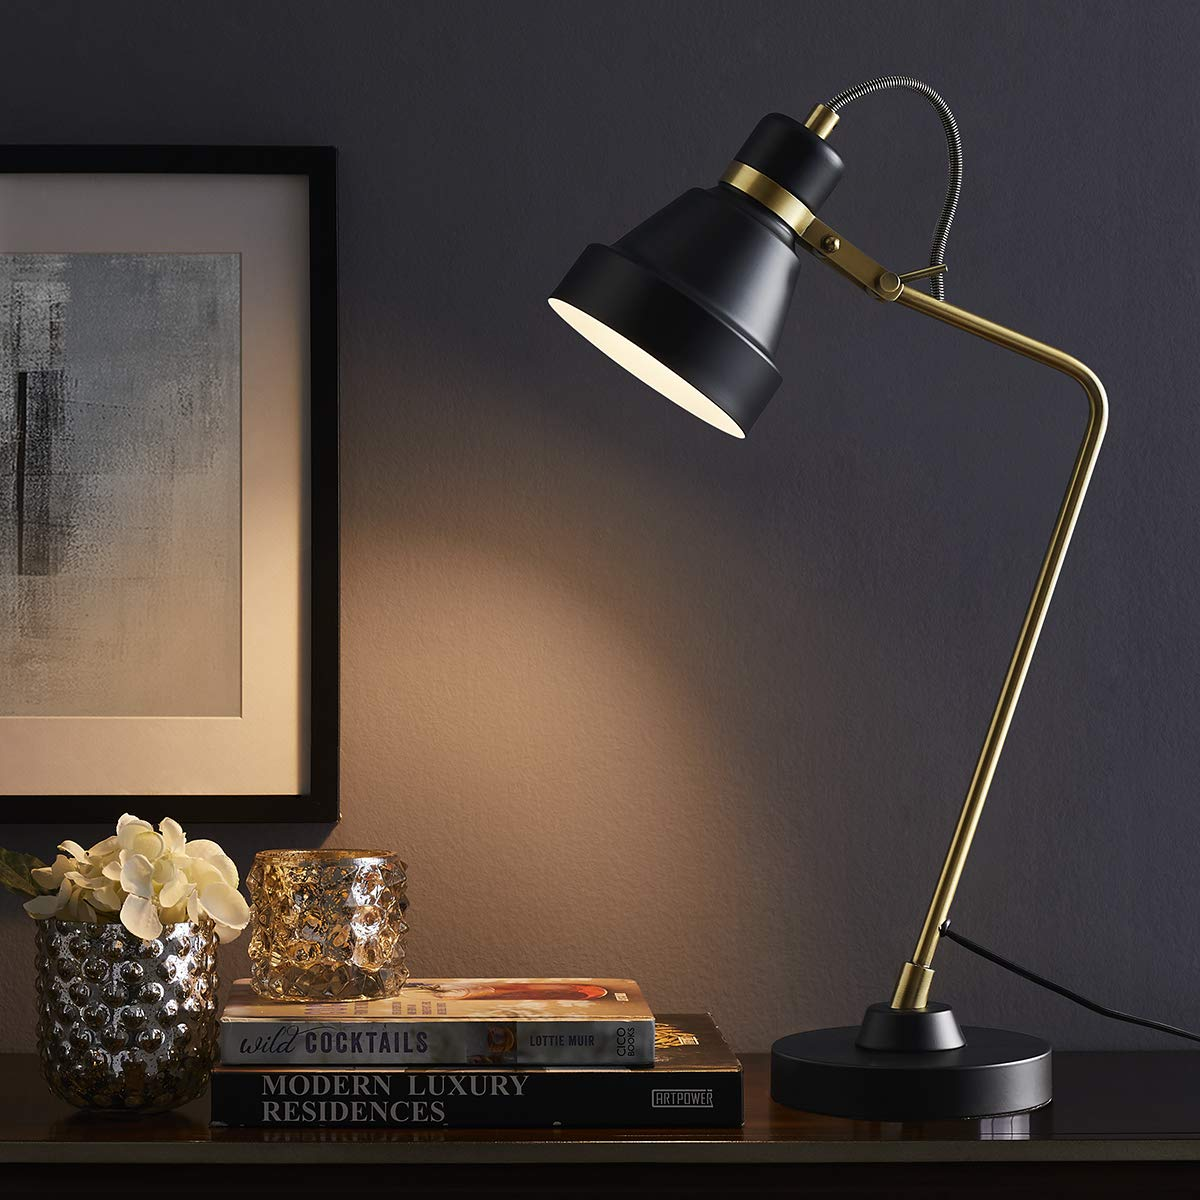 ARPENTER Modern Table Reading Desk Lamp for Bedroom, Living Room, Study, Office, 100 Metal Bedside Nightstand Lamp, 22 High with Adjustable Shade, Antique Brass with Black Task Industrial Table Lamp